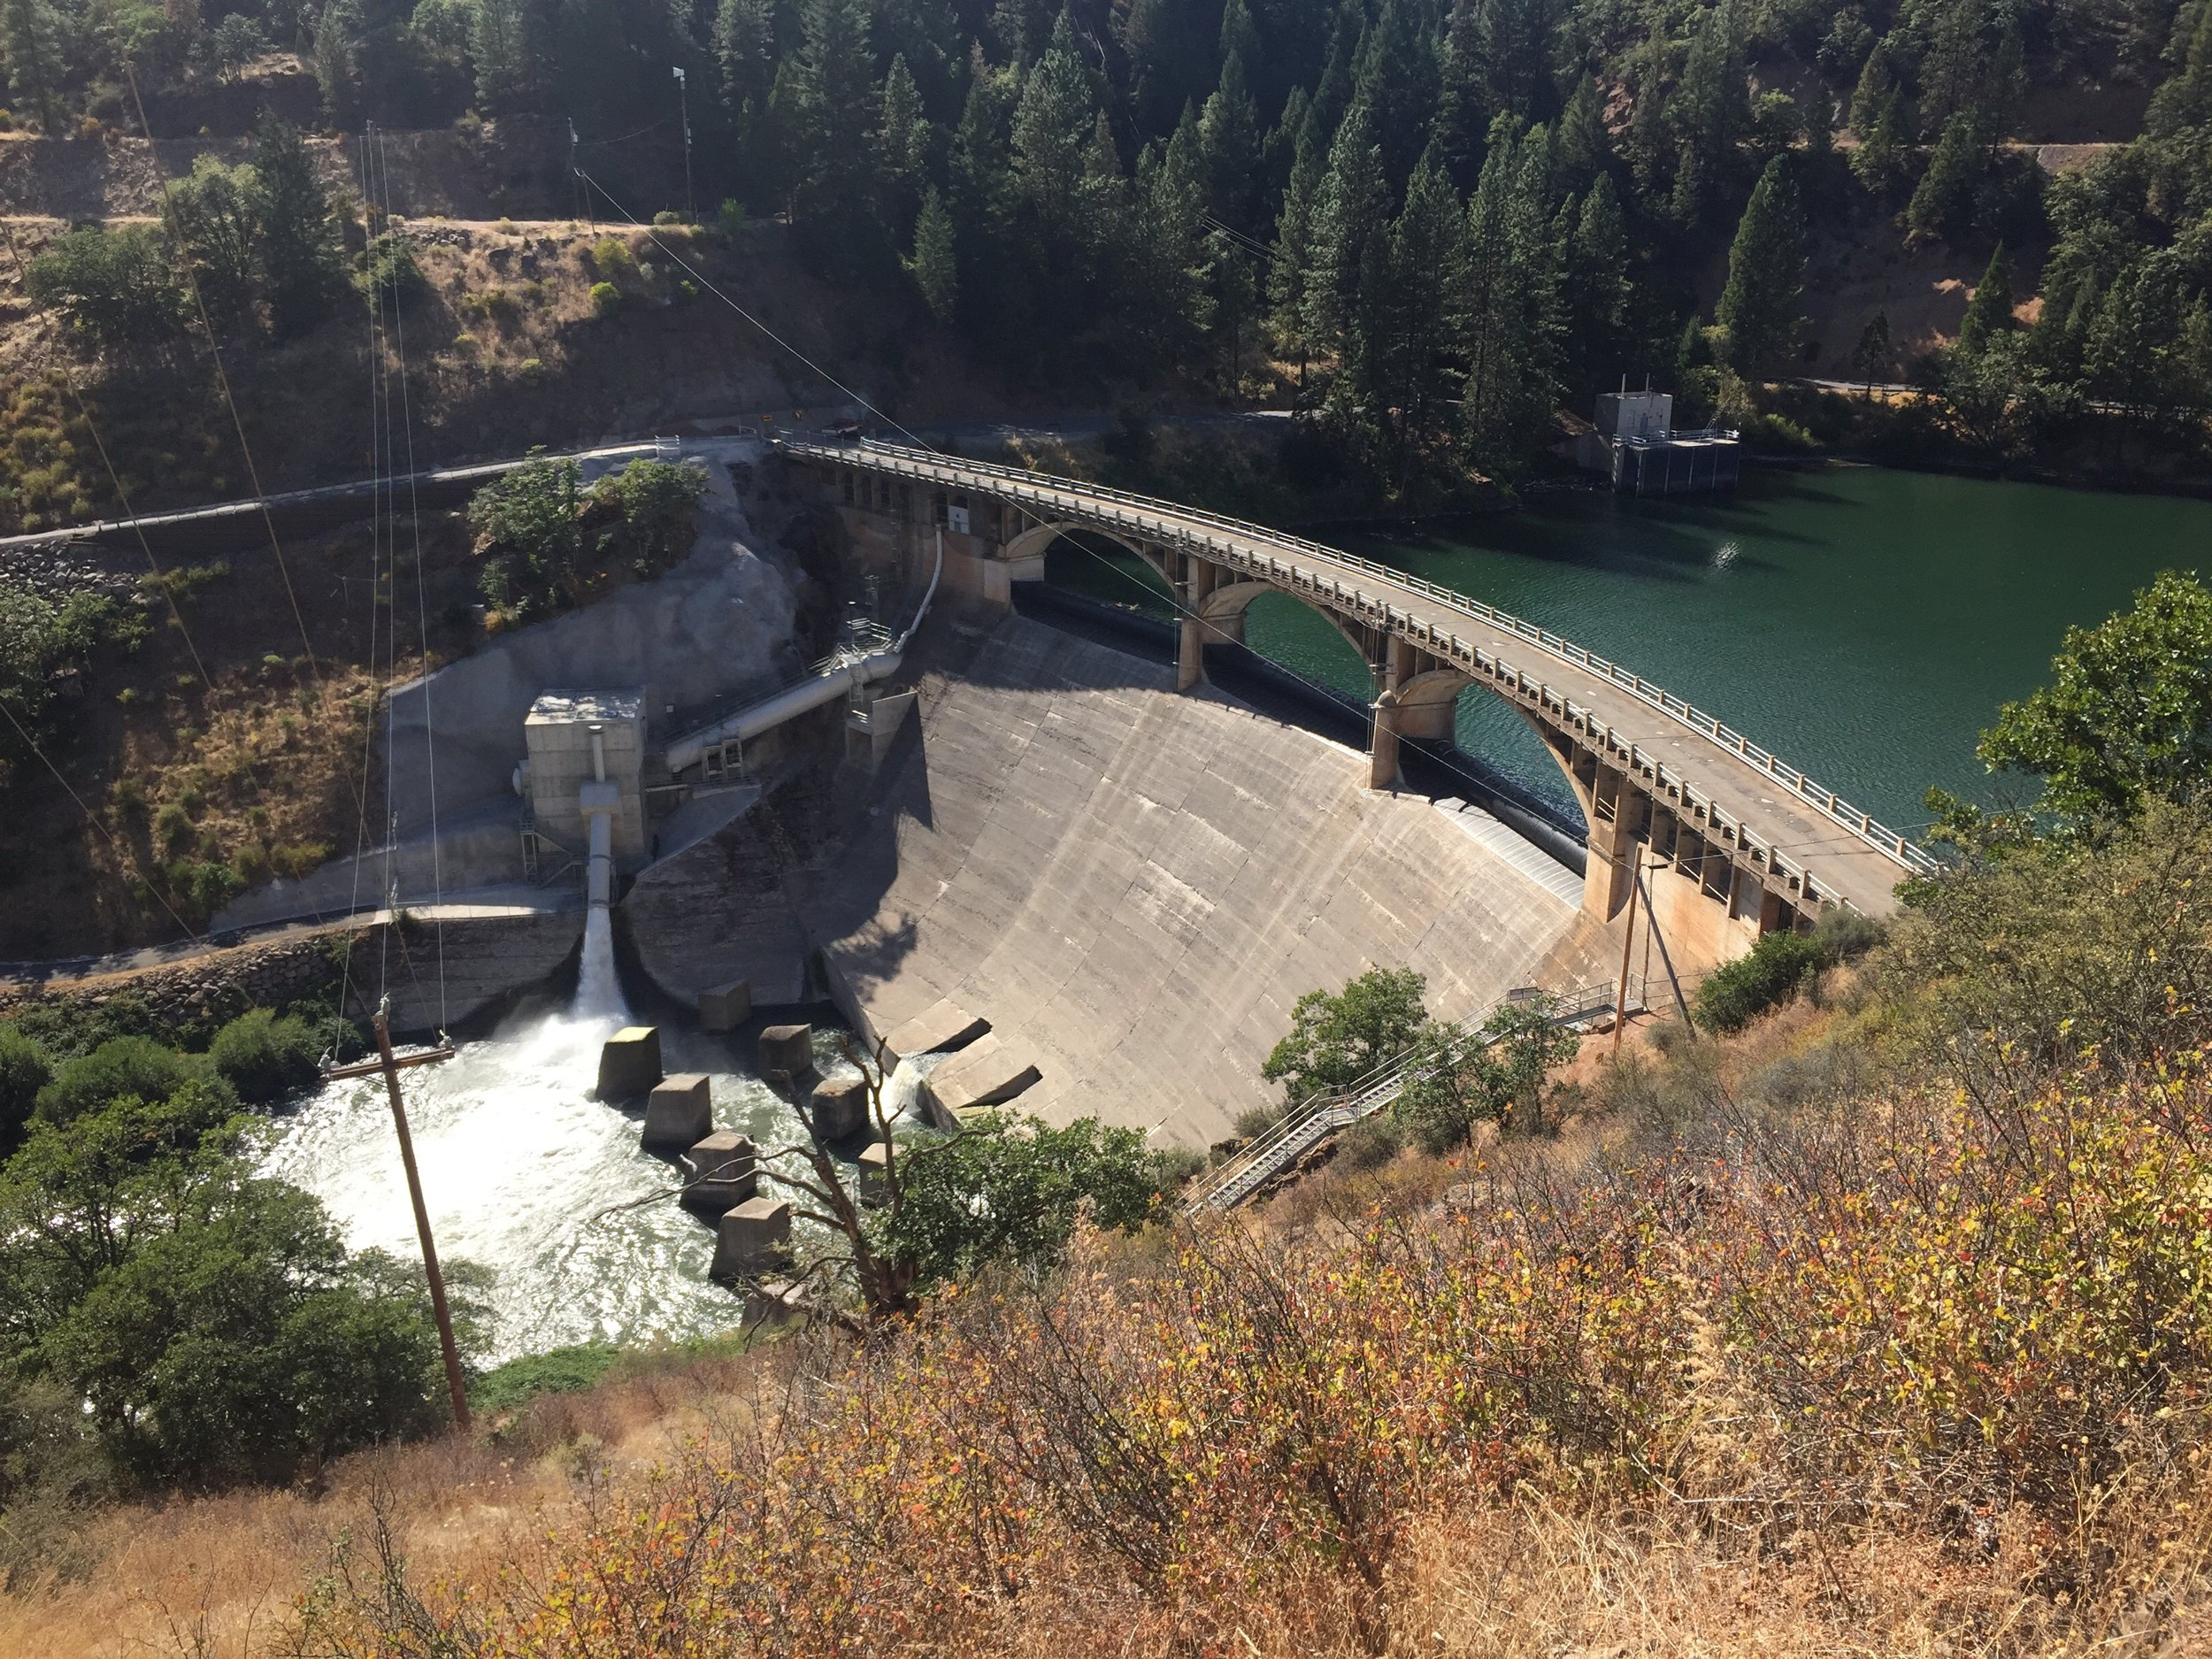 Lake Britton dam with the Pit River far below